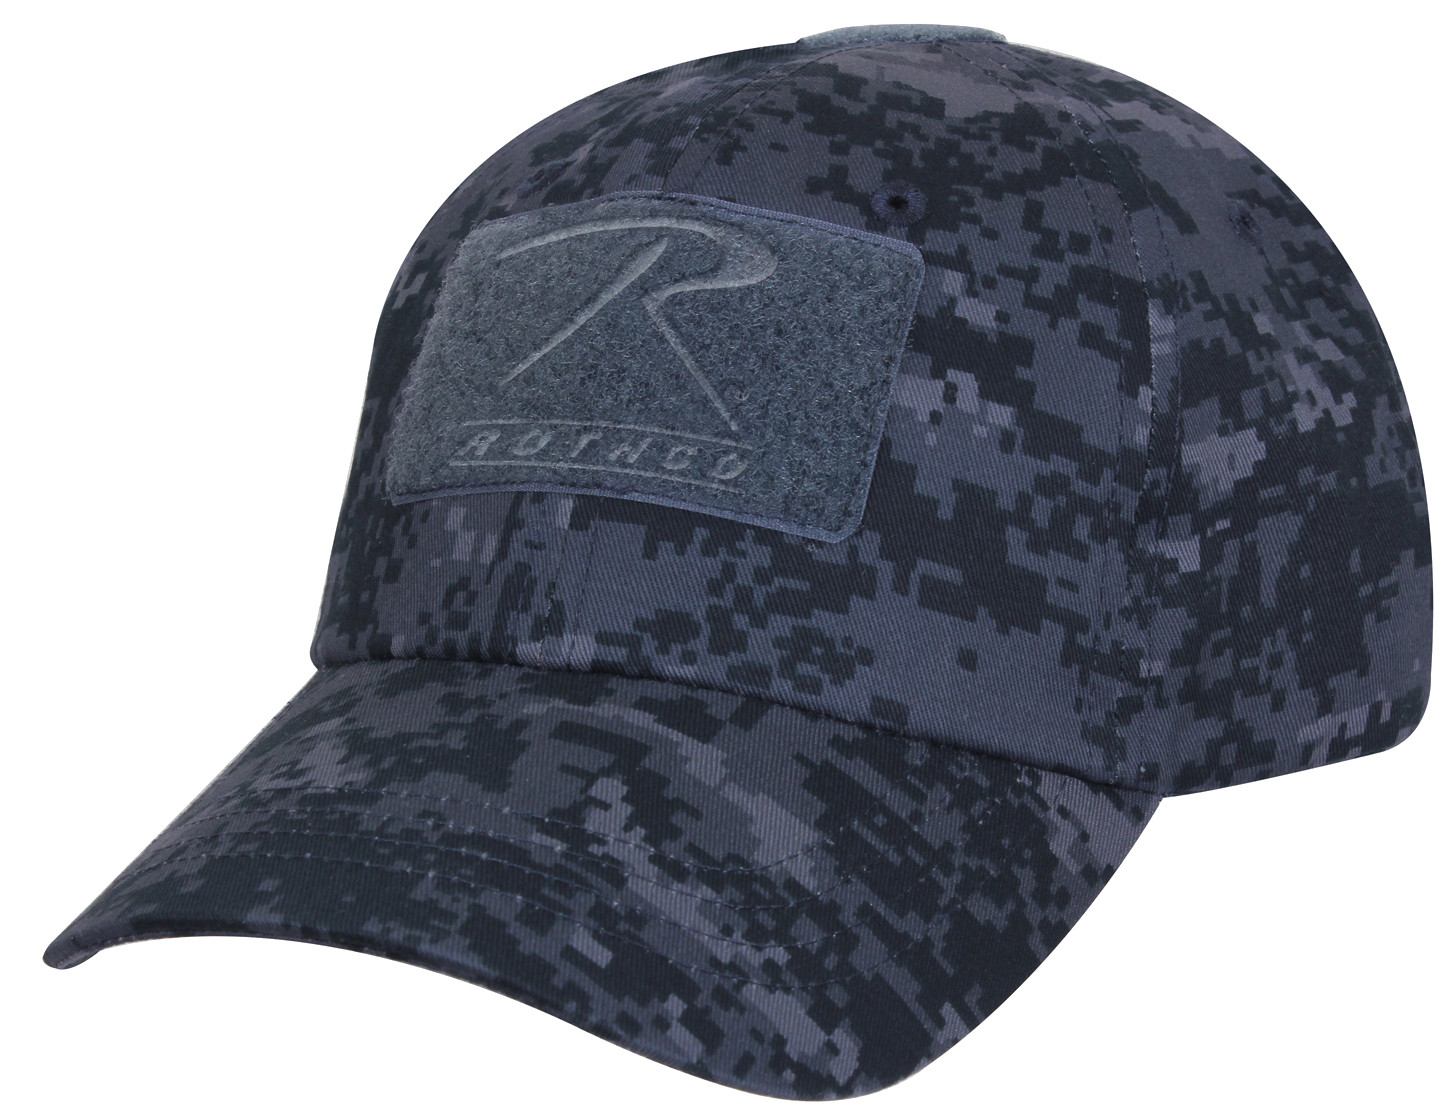 More Views. Midnight Digital Camouflage Tactical Military Baseball Operator  Cap 43464b3ef54